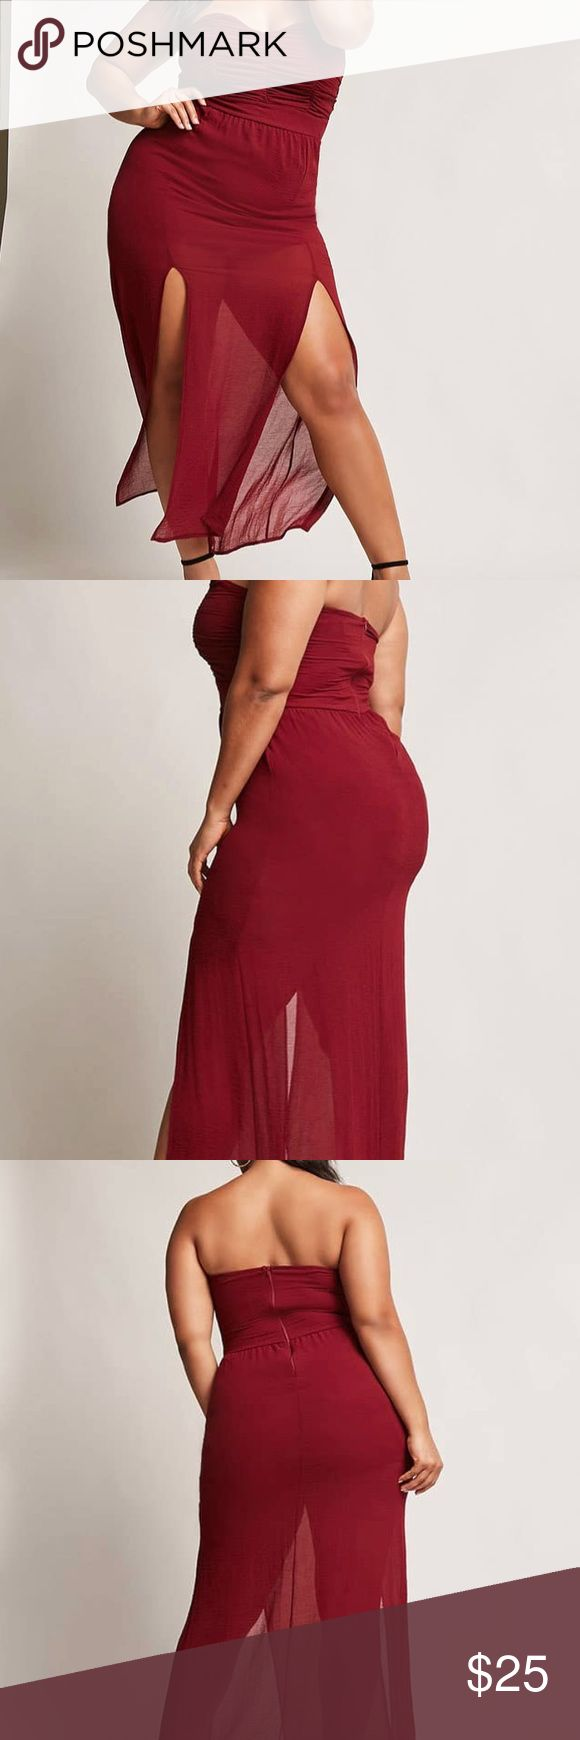 Ruched Tubes Maxi Dress Burgundy New with tags. No flaws, just changed my mind. Has been stored in the original bag just tried on 1-2x Forever 21 Dresses Maxi